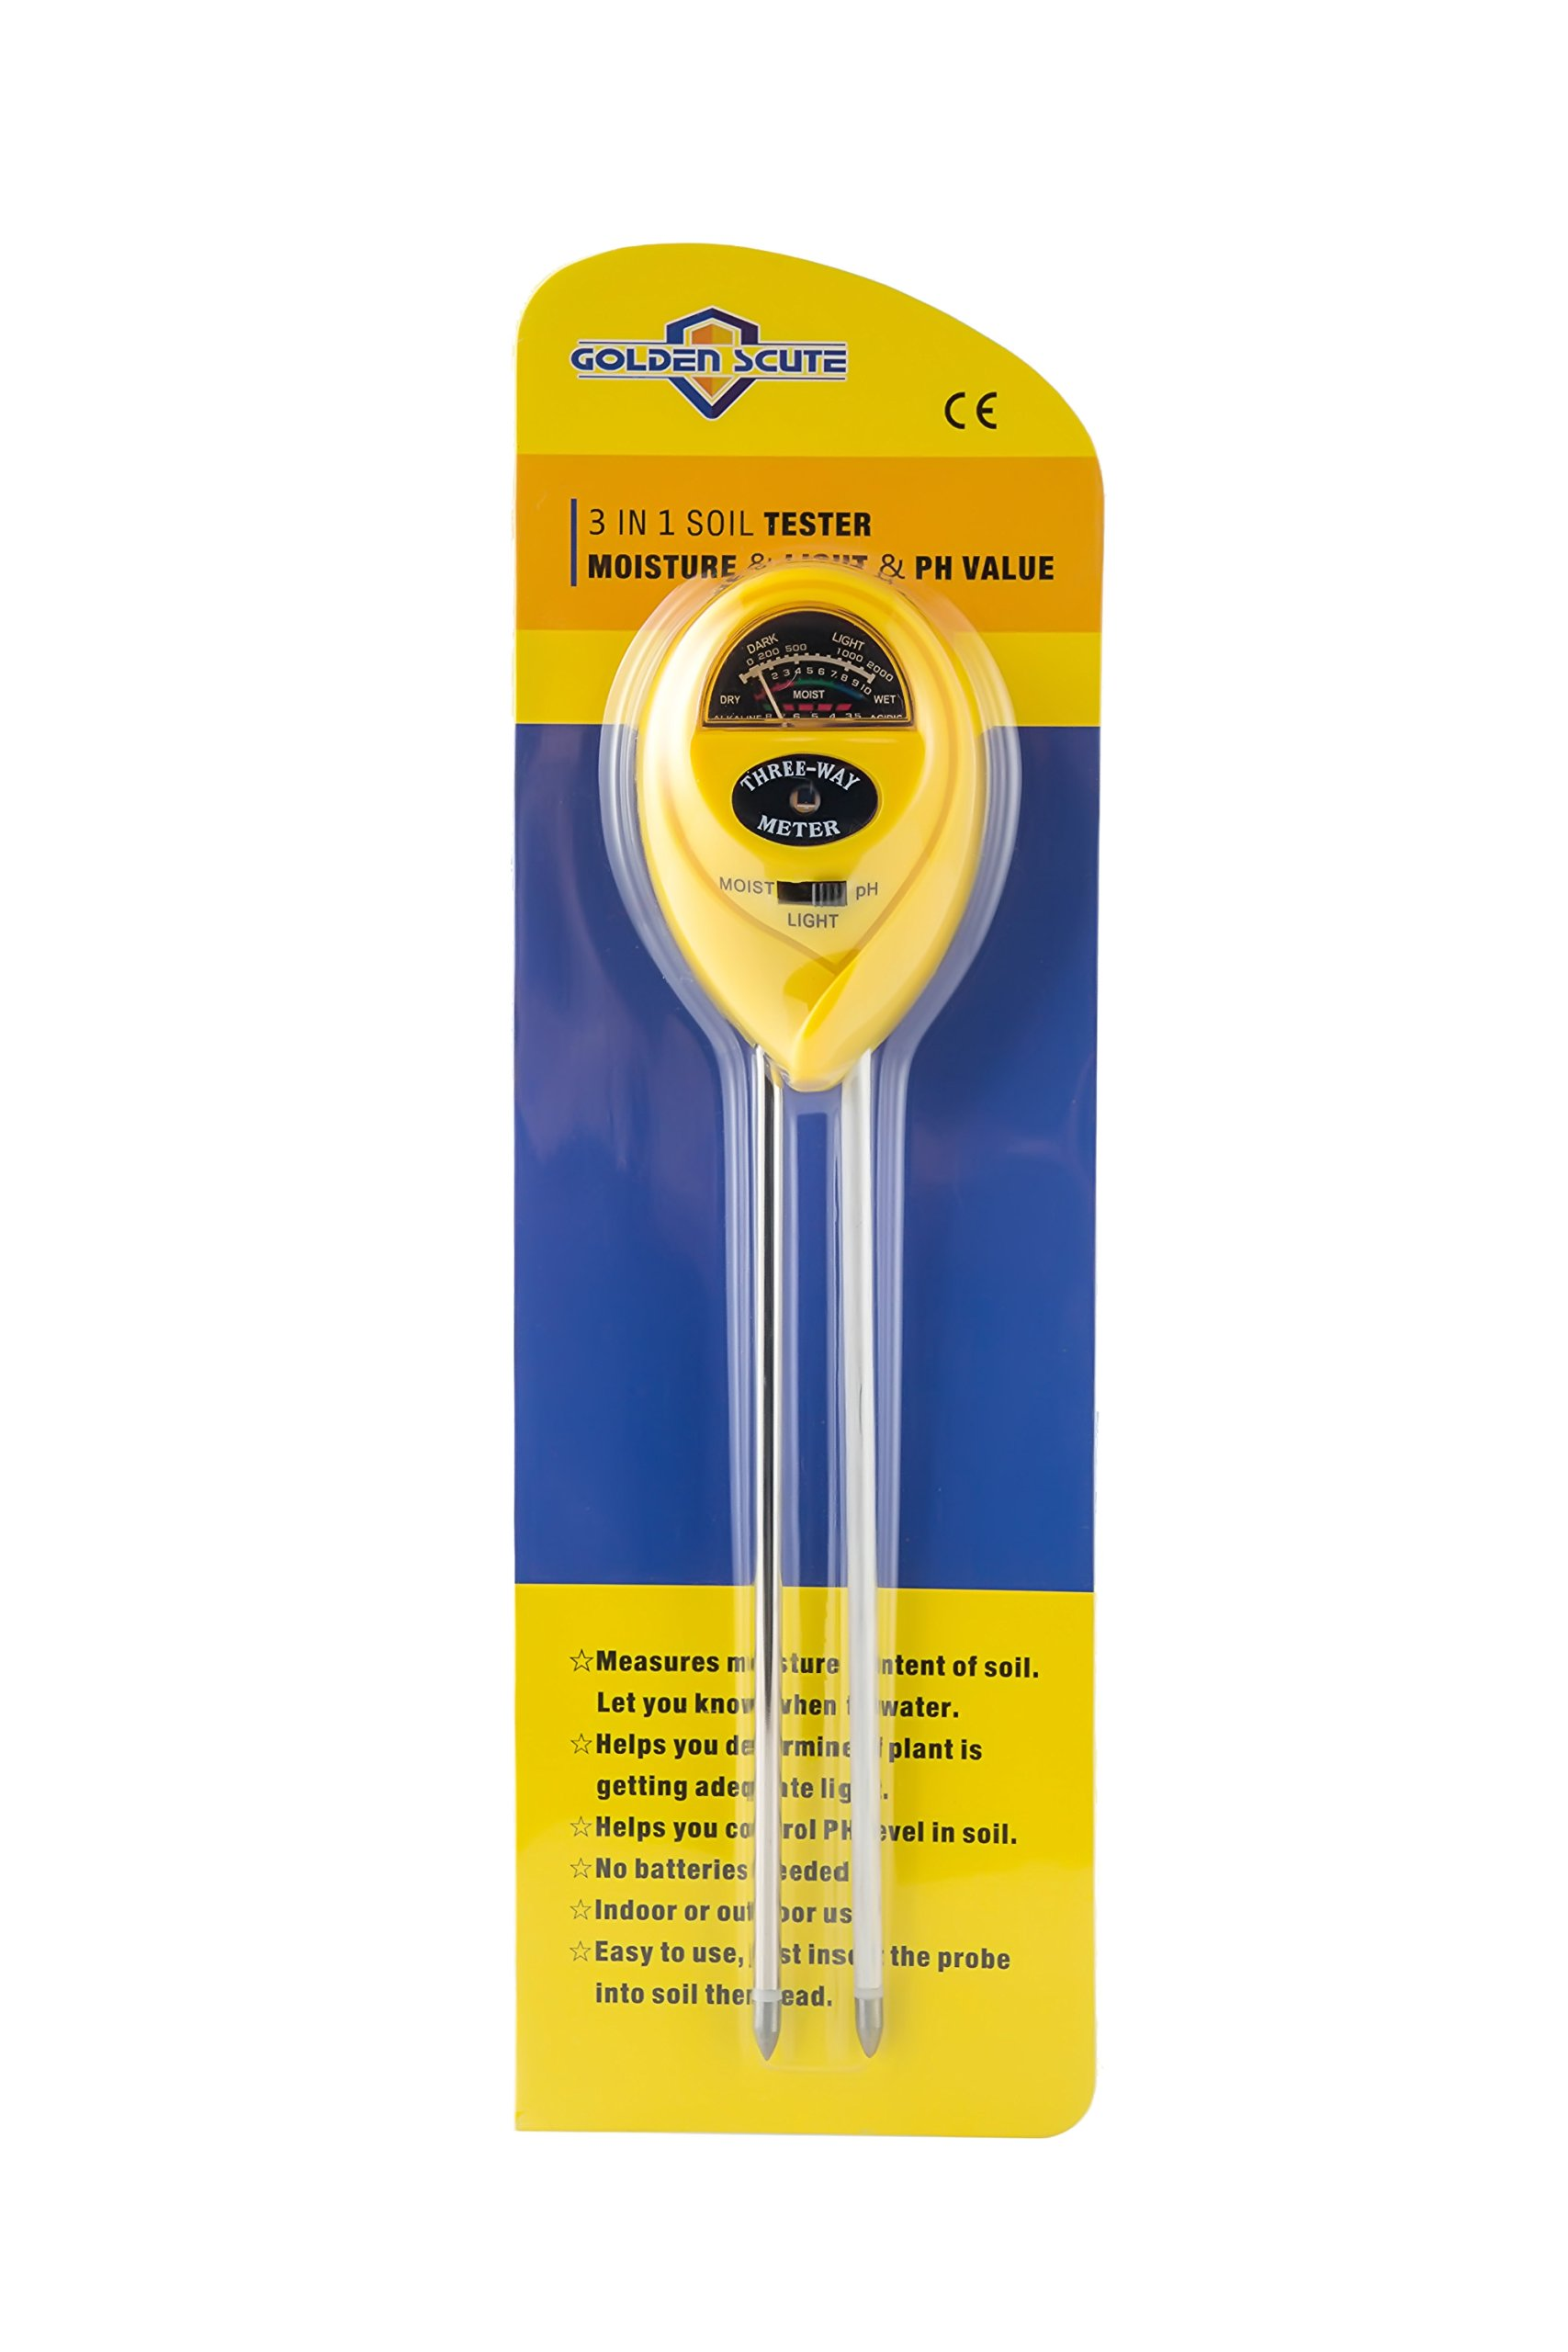 Golden Scute 3 in 1 Soil Tester for PH Meter, Moisture, Sunlight and Acidity, Garden Tools for Farm, Plants and Herbs, Indoor & Outdoor Plant Care (No Battery Needed)